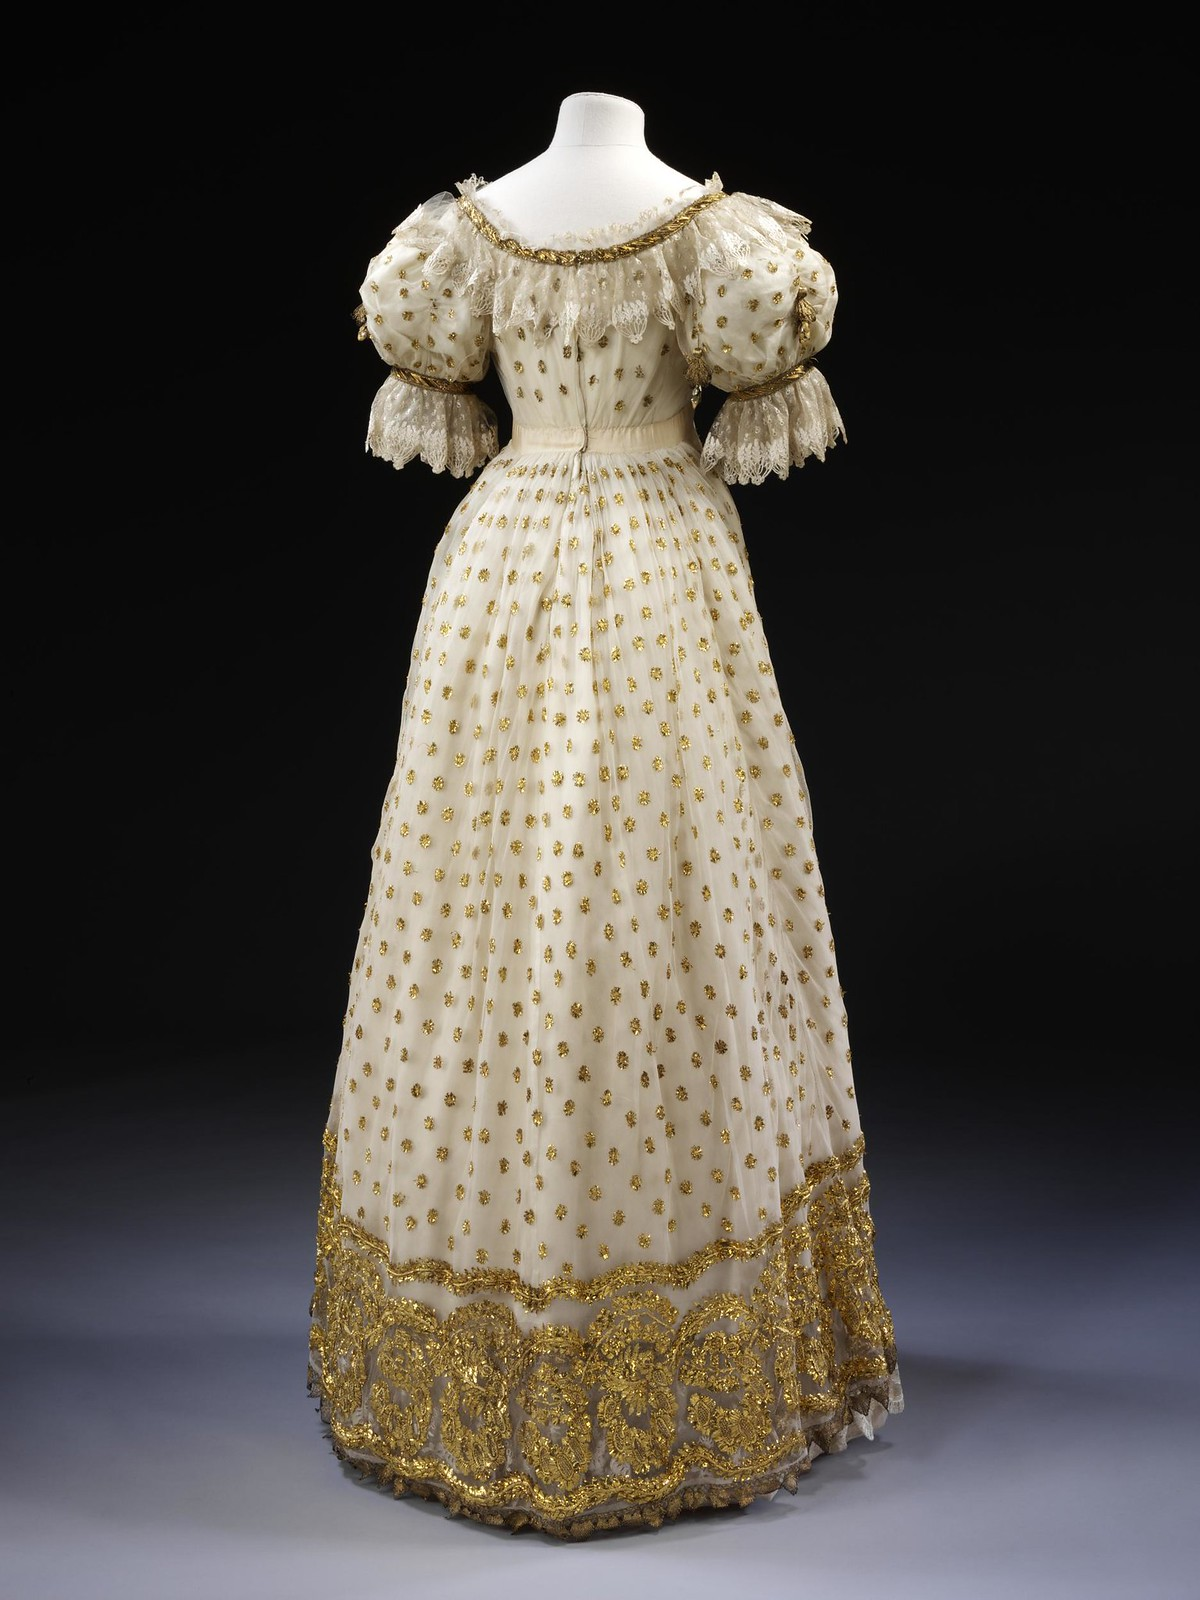 1820 Ball gown. British. Silk satin and silk embroidered with metal. © Victoria and Albert Museum, London